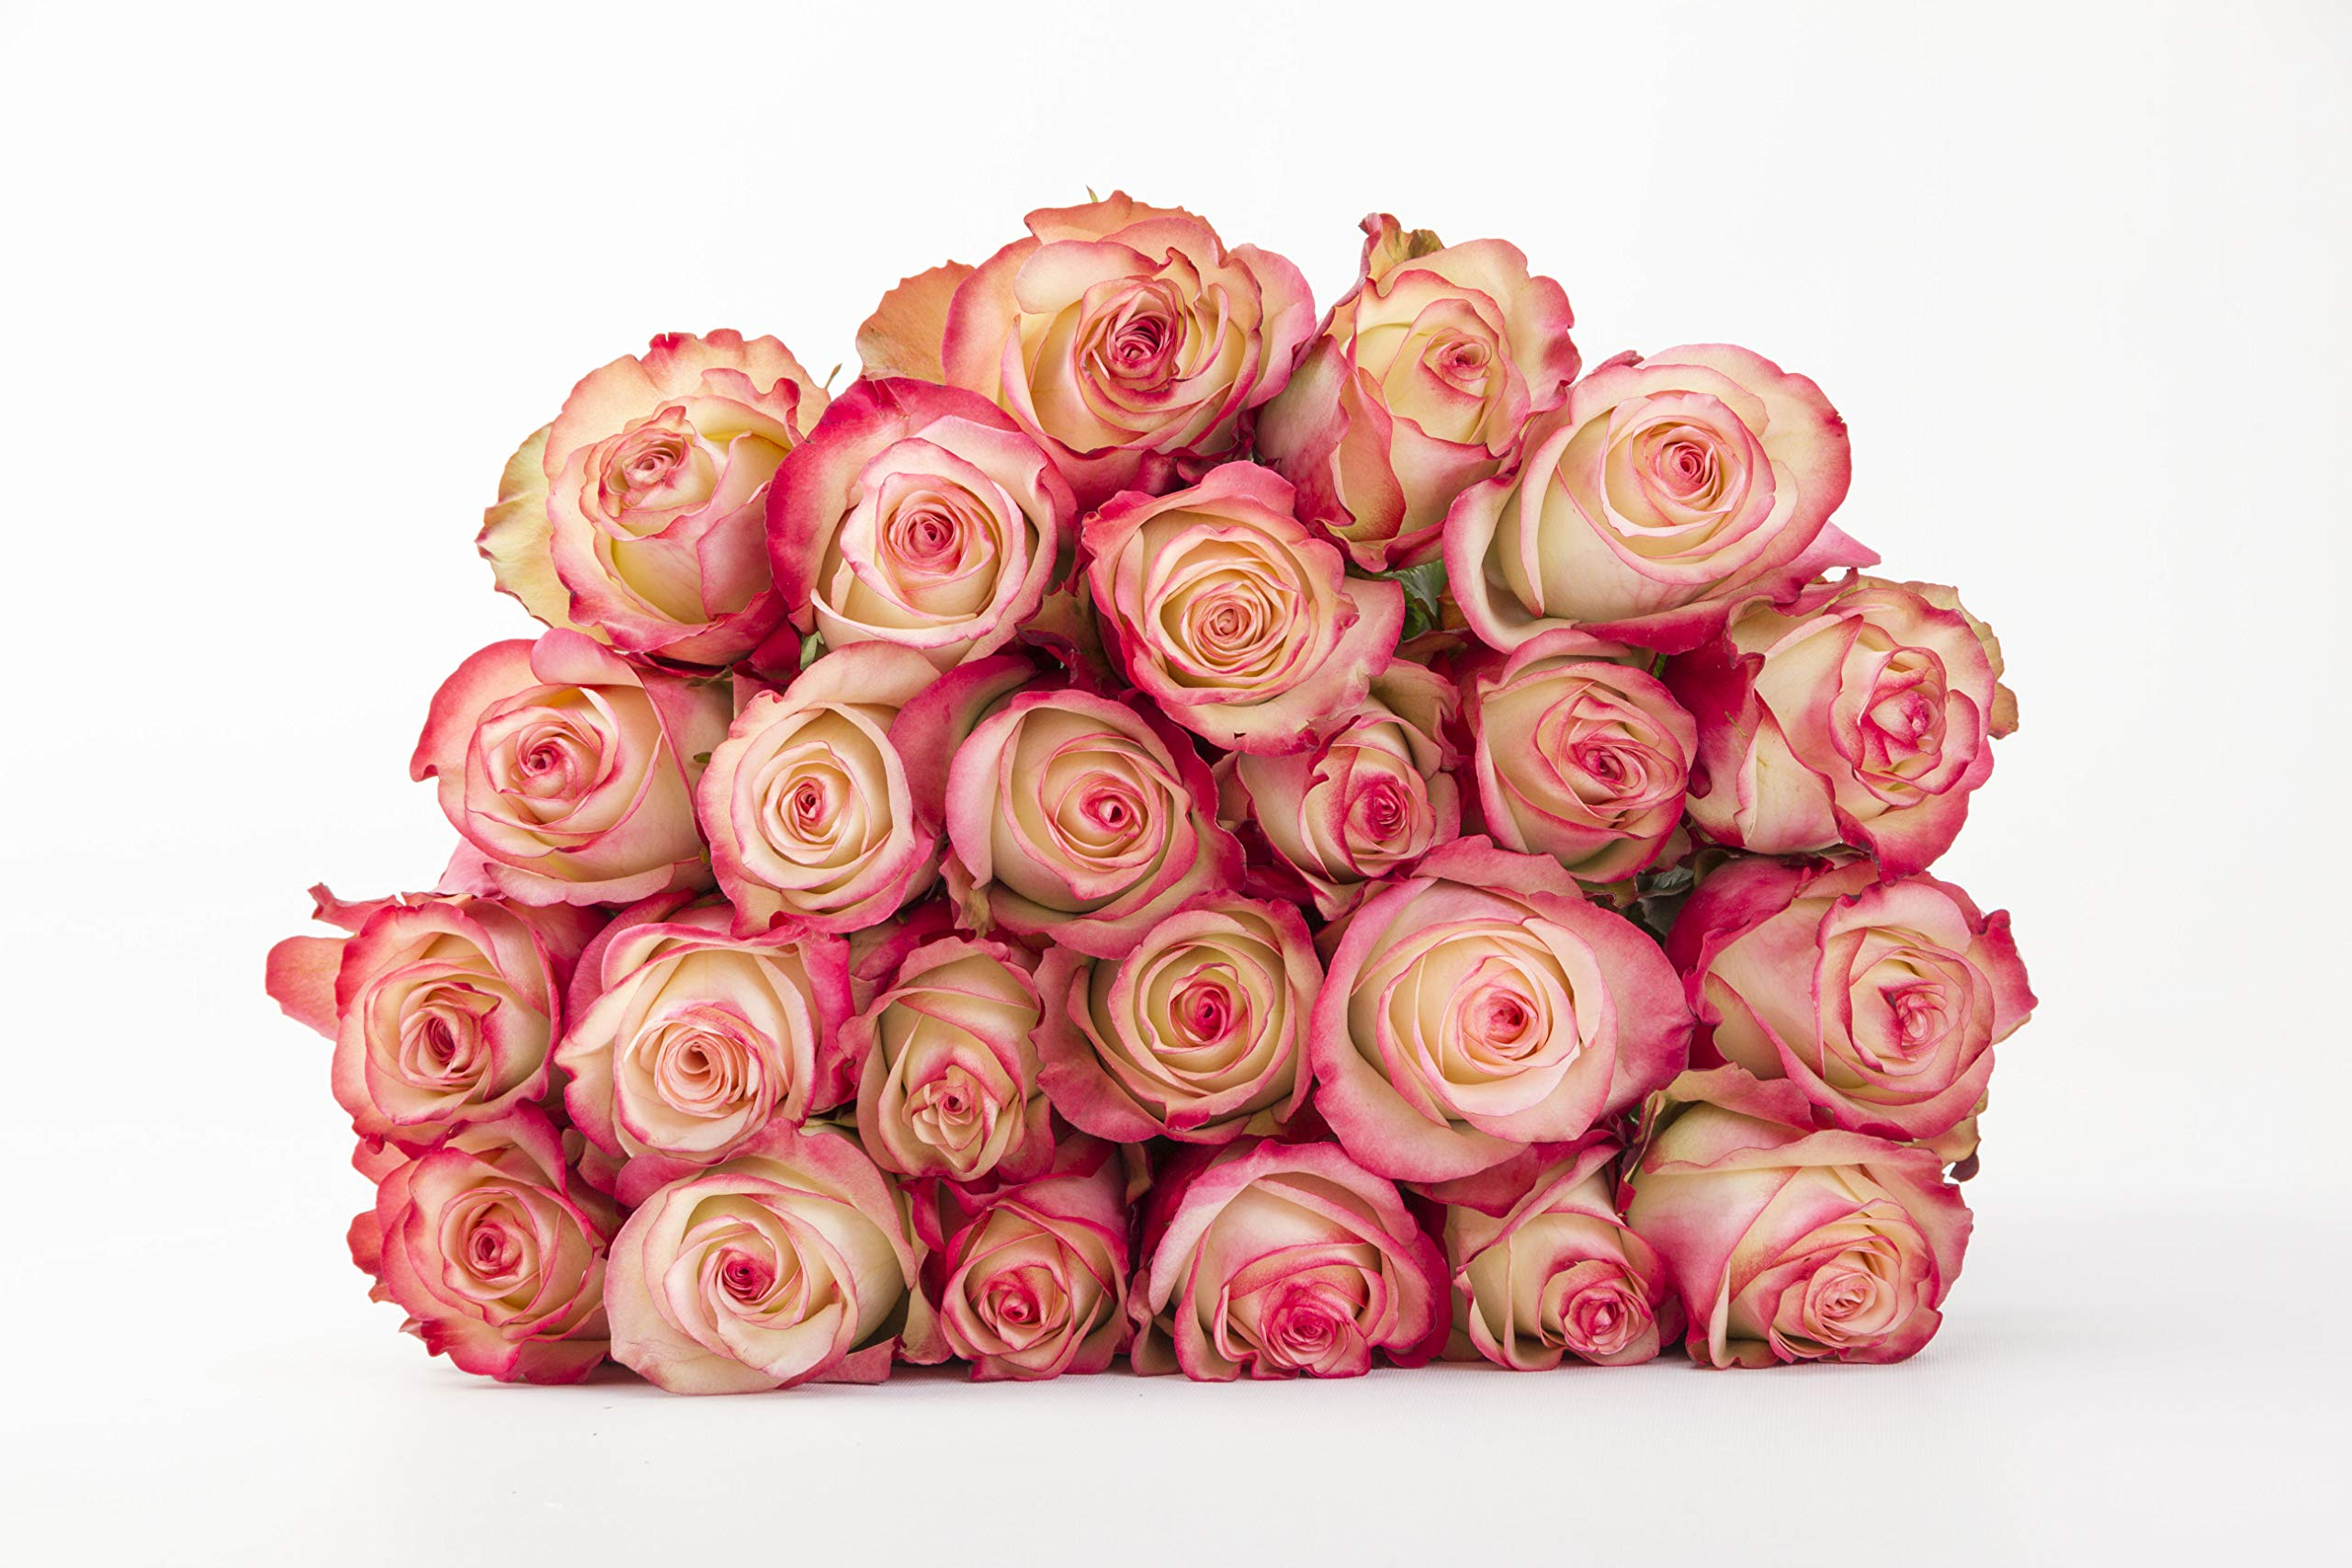 Martha Stewart Roses by BloomsyBox - Two Dozen Magenta & White Paloma Roses Selected by Martha and Hand-Tied, Long Vase Life